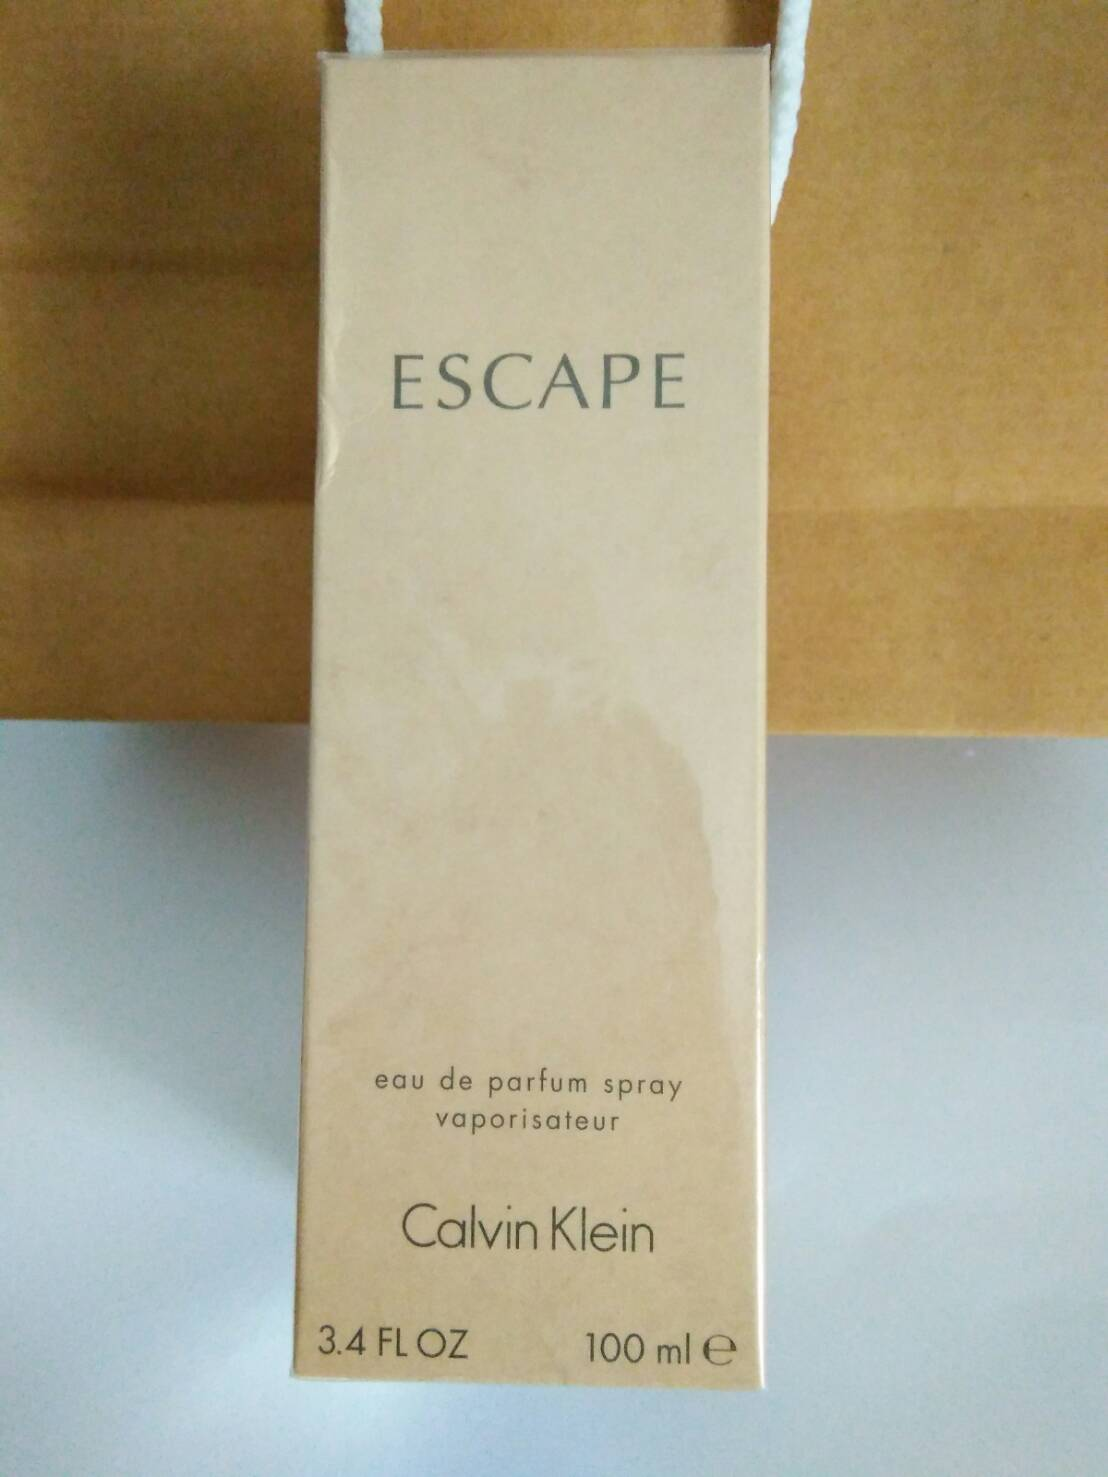 น้ำหอม Escape for women by Calvin Klein 100ml.